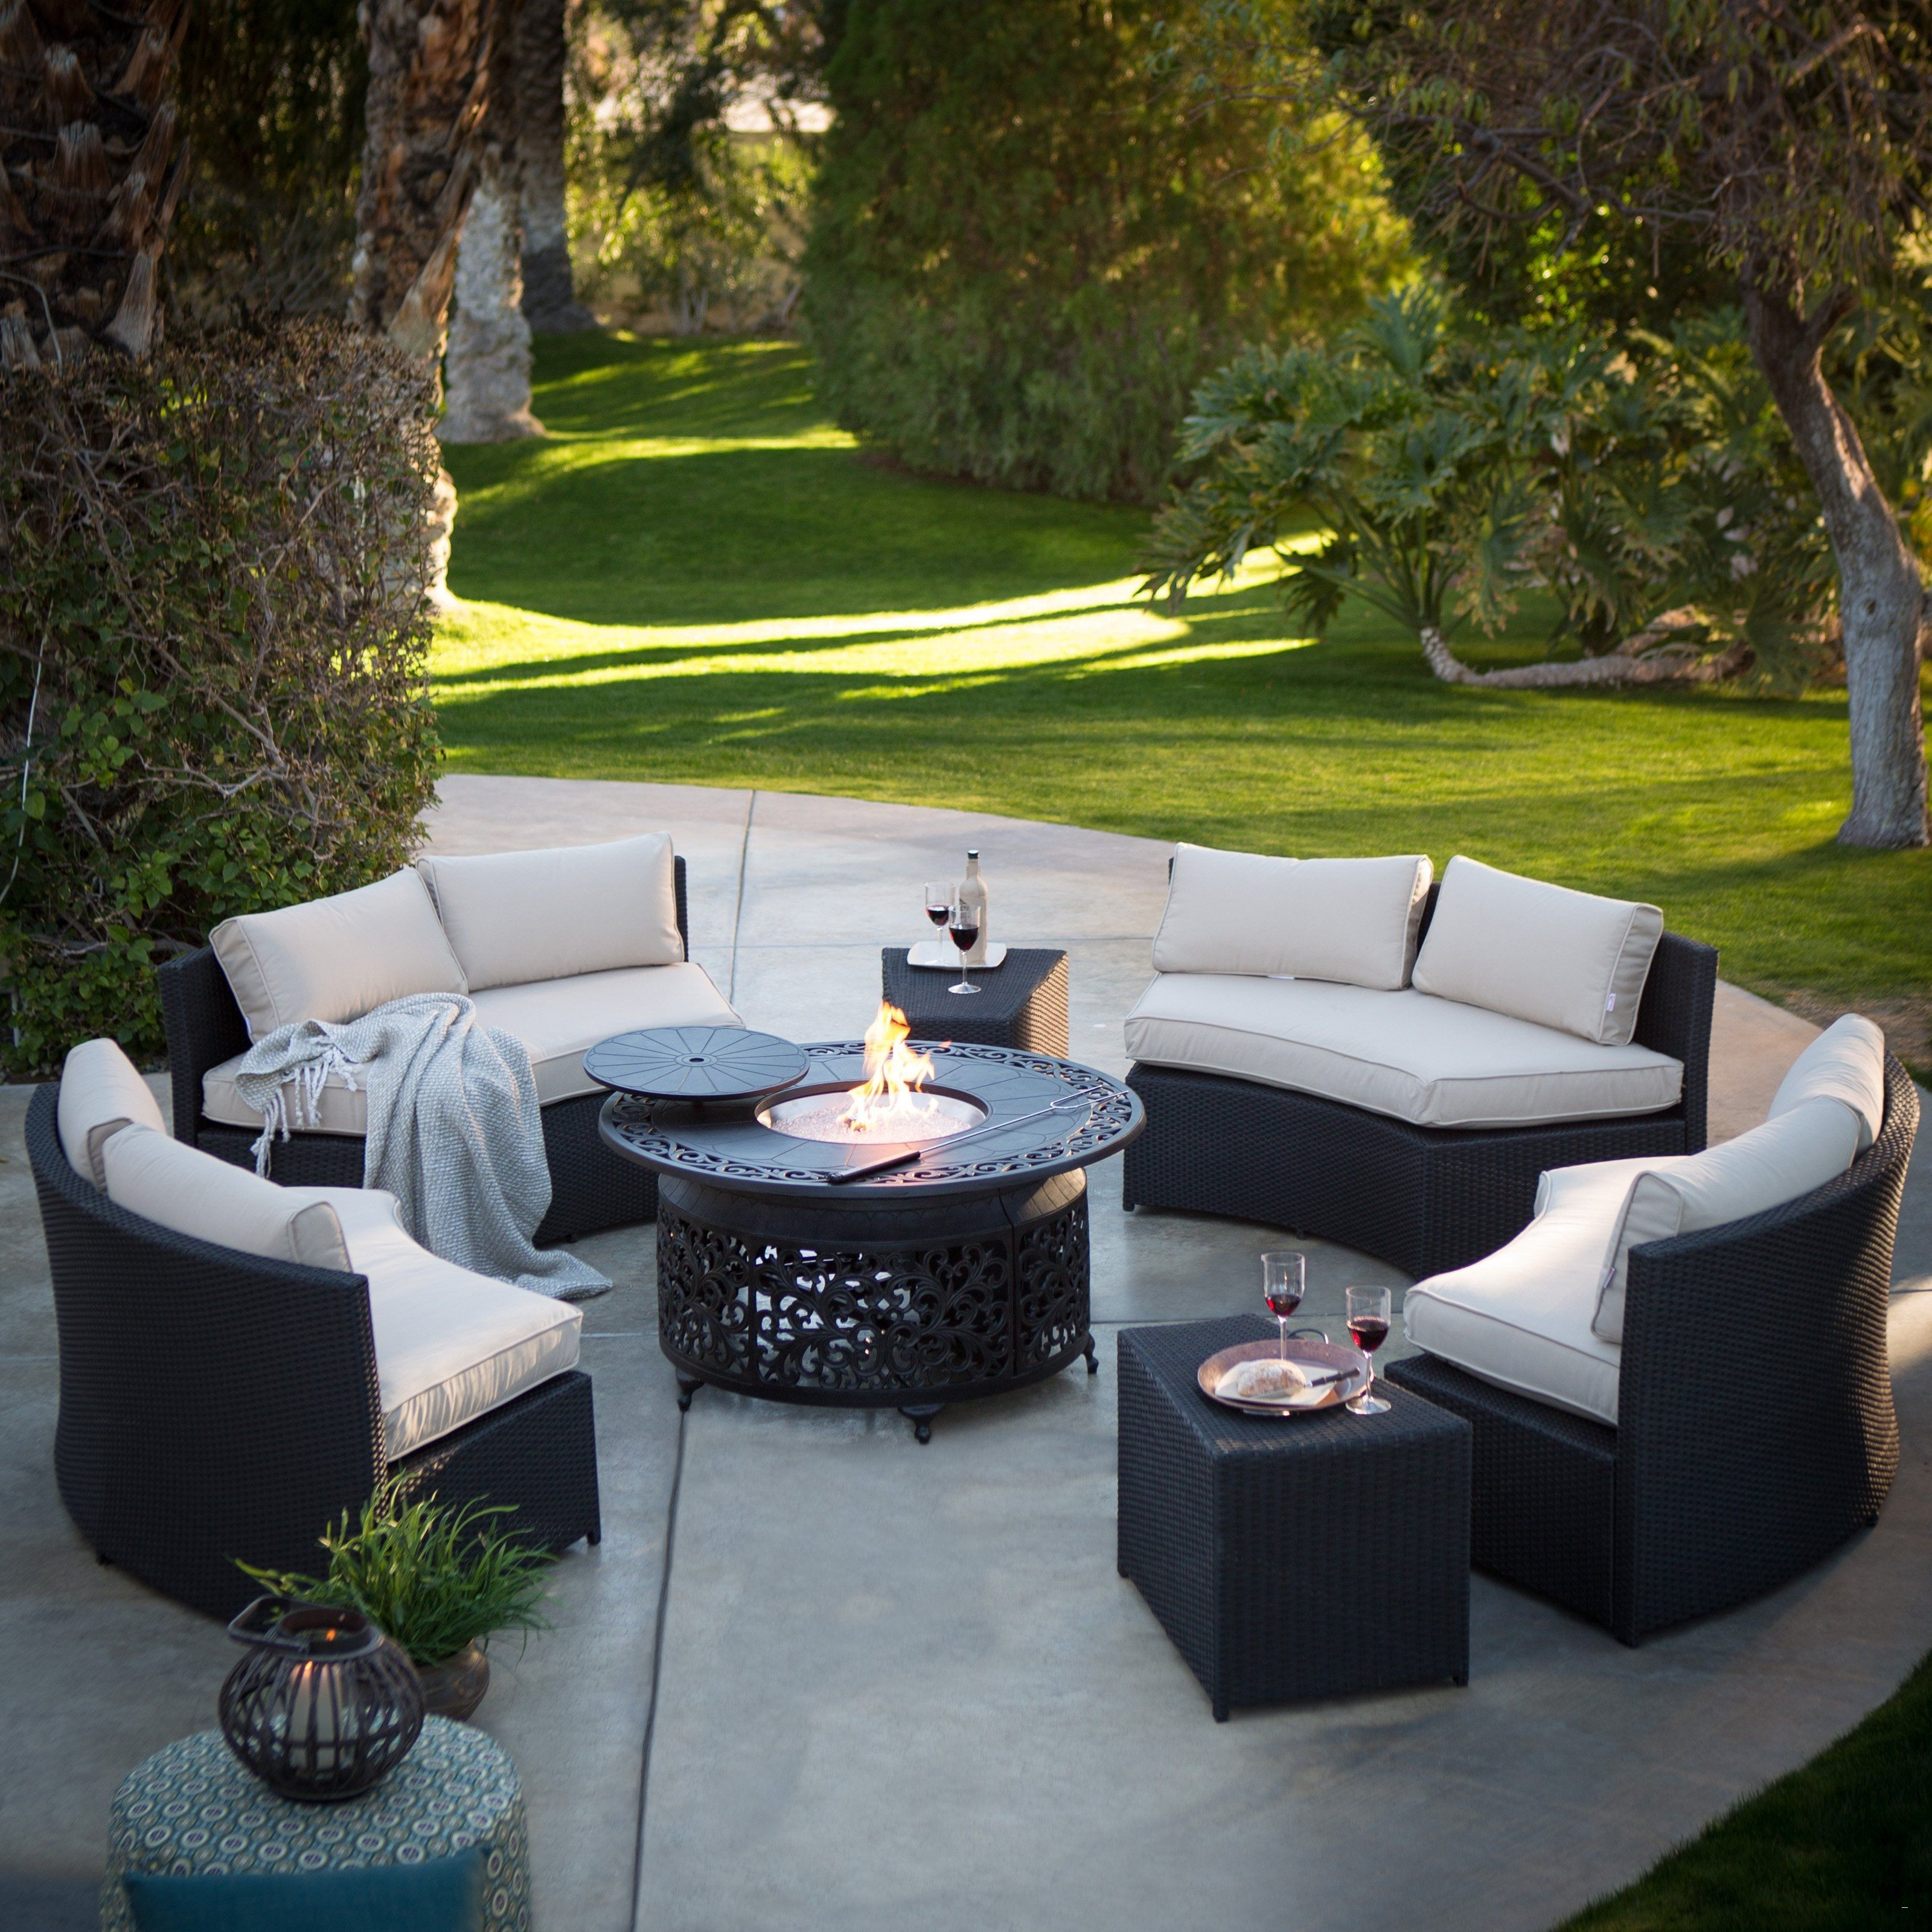 Most Popular Wonderful Fire Pit Conversation Set Patio Sets With Belham Living Throughout Hayneedle Patio Conversation Sets (View 15 of 20)